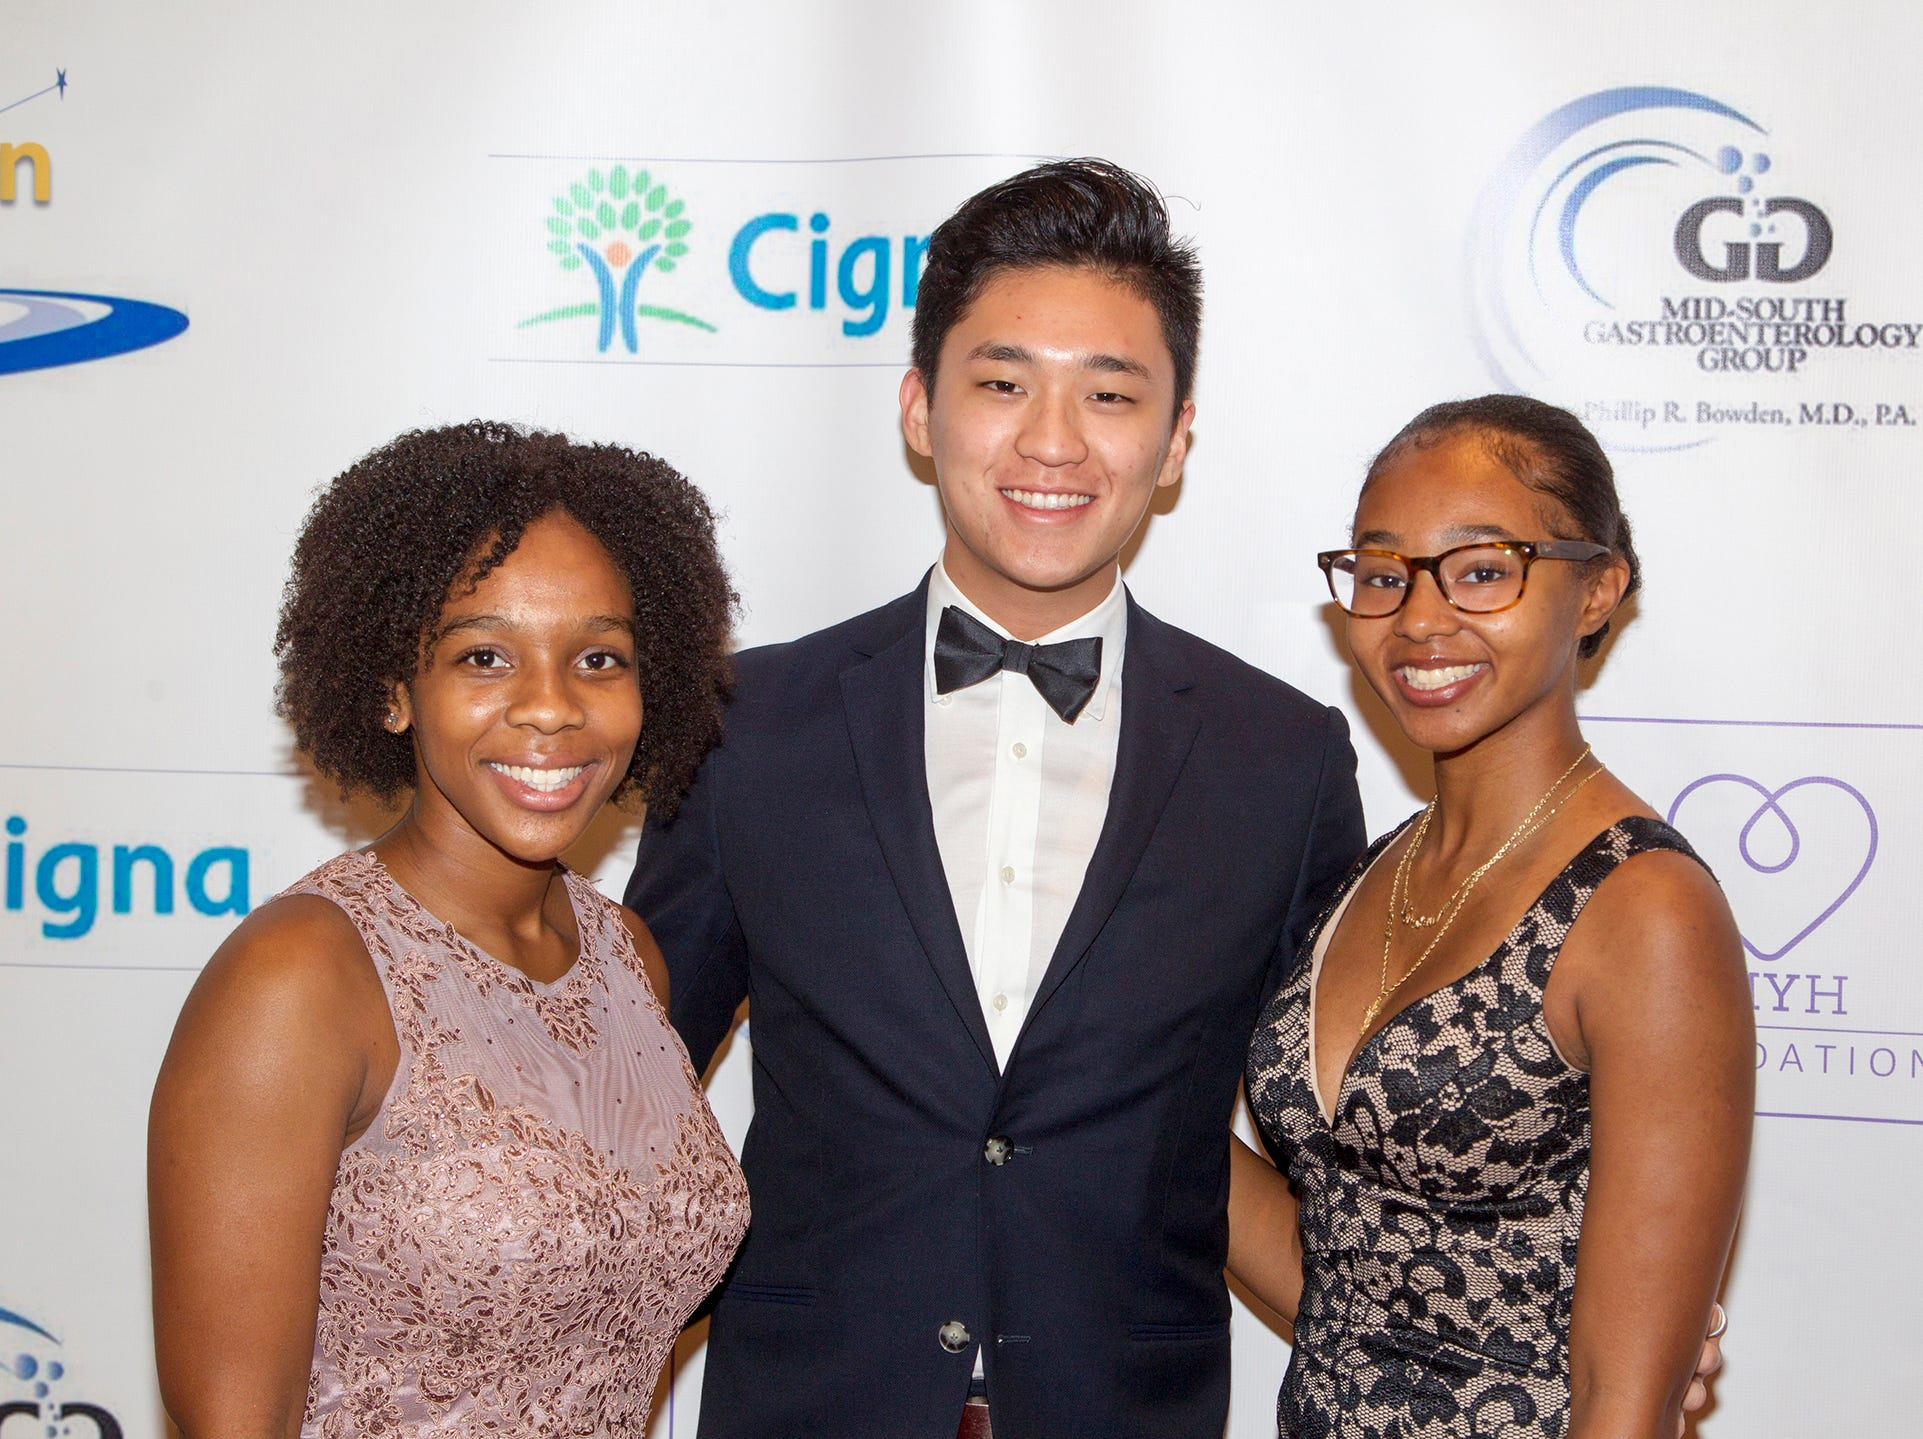 Ciyon, Lee, Kim. .Jessie Banks Foundation holds 16th annual Scholarship Awards Gala in Teaneck. 11/09/2018